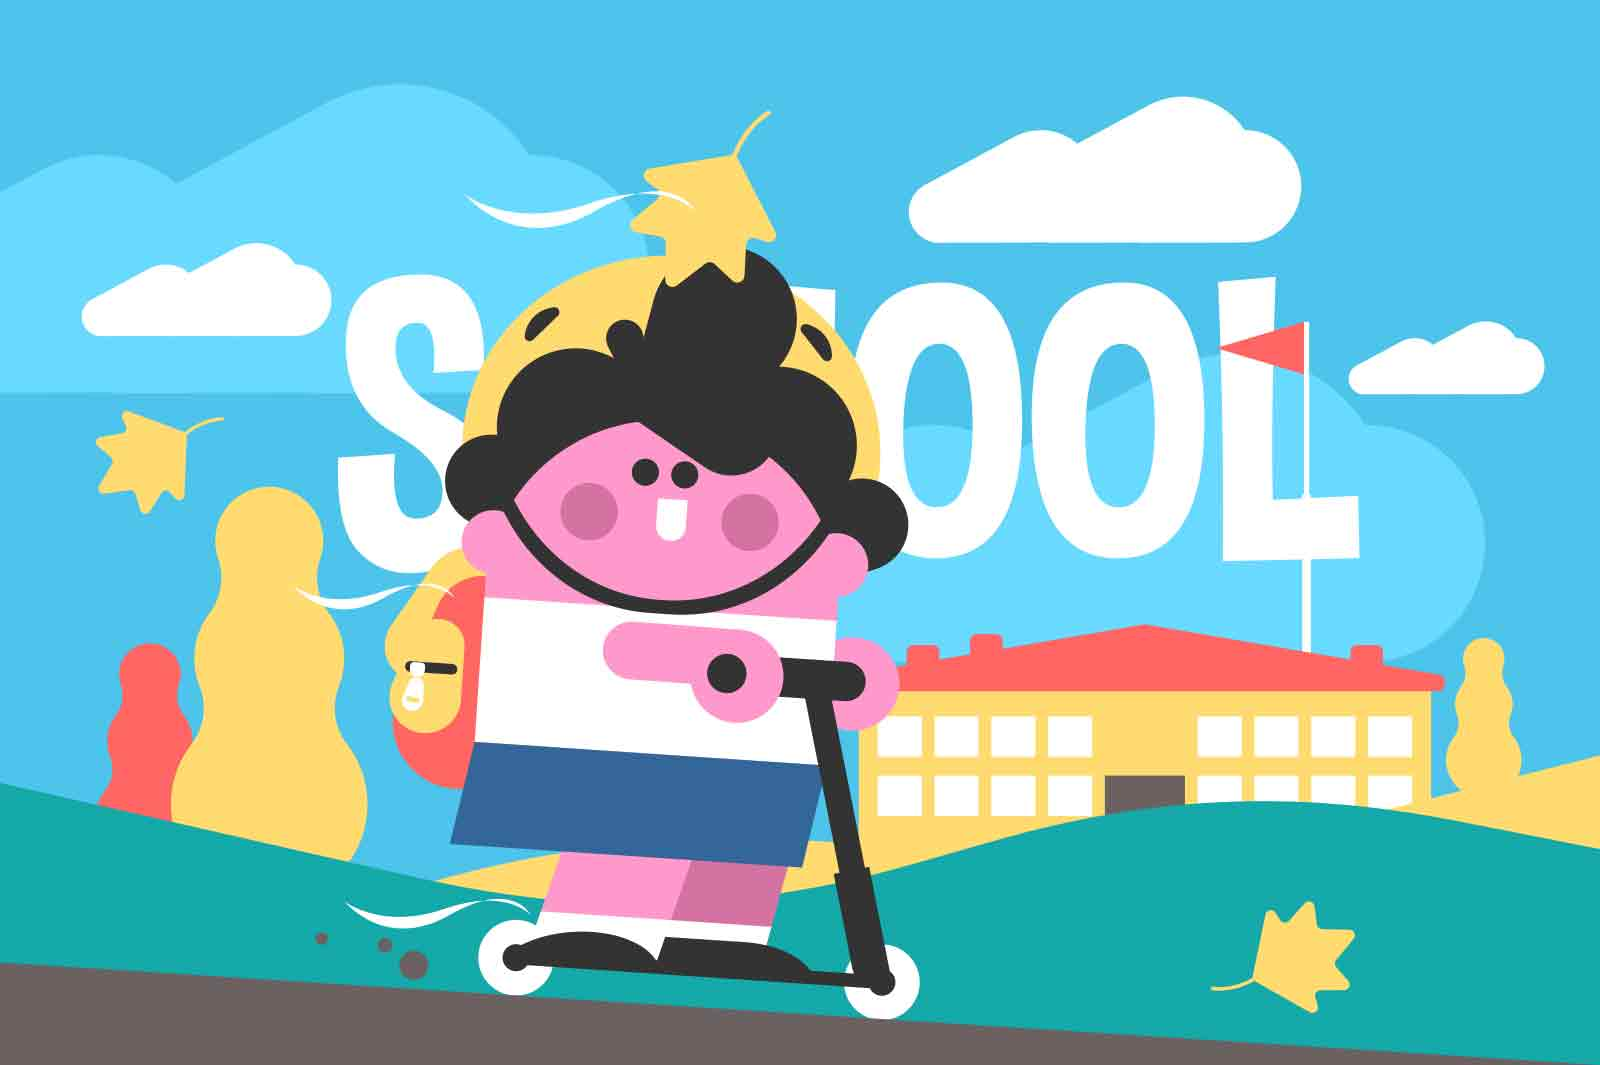 Kid goes on scooter to school vector illustration. Happy child ride outdoors flat style. Childhood, entertainment, vehicle, fun concept